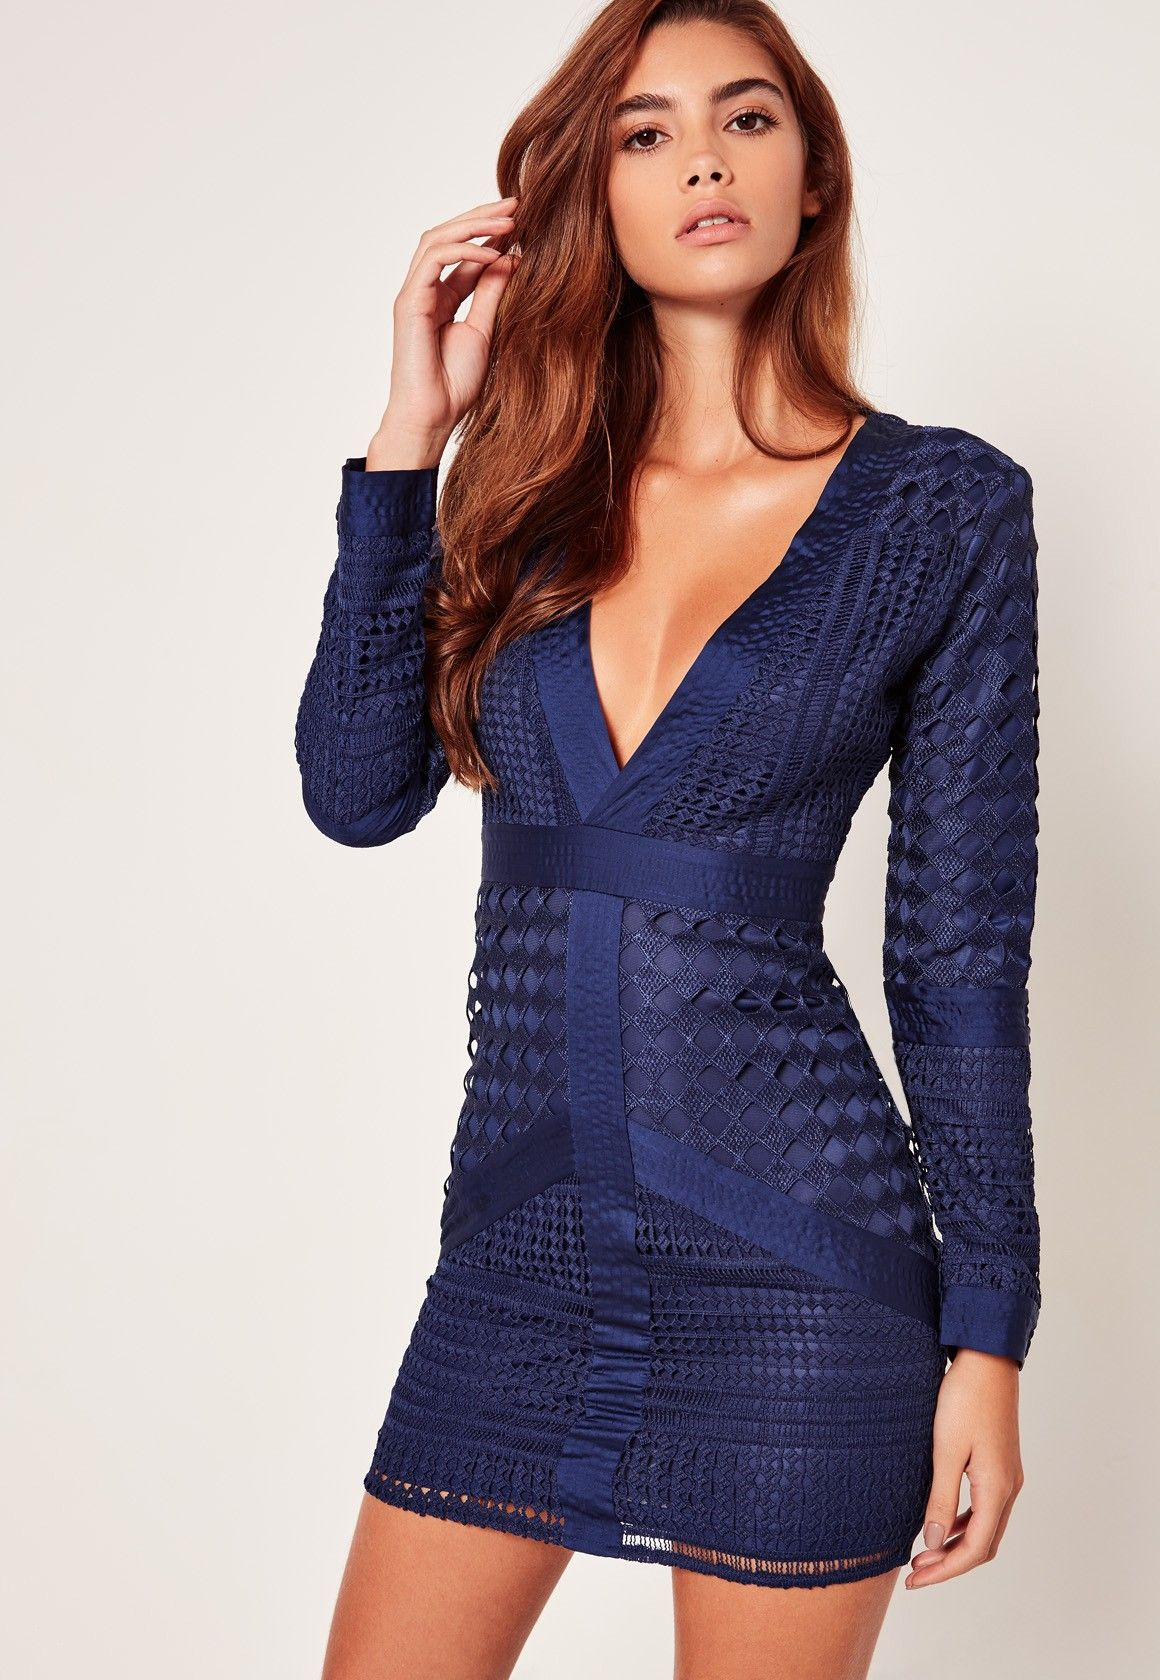 0f6126b8d8ad Missguided - Navy Lace Plunge Bodycon Dress | Dresses | Navy bodycon ...